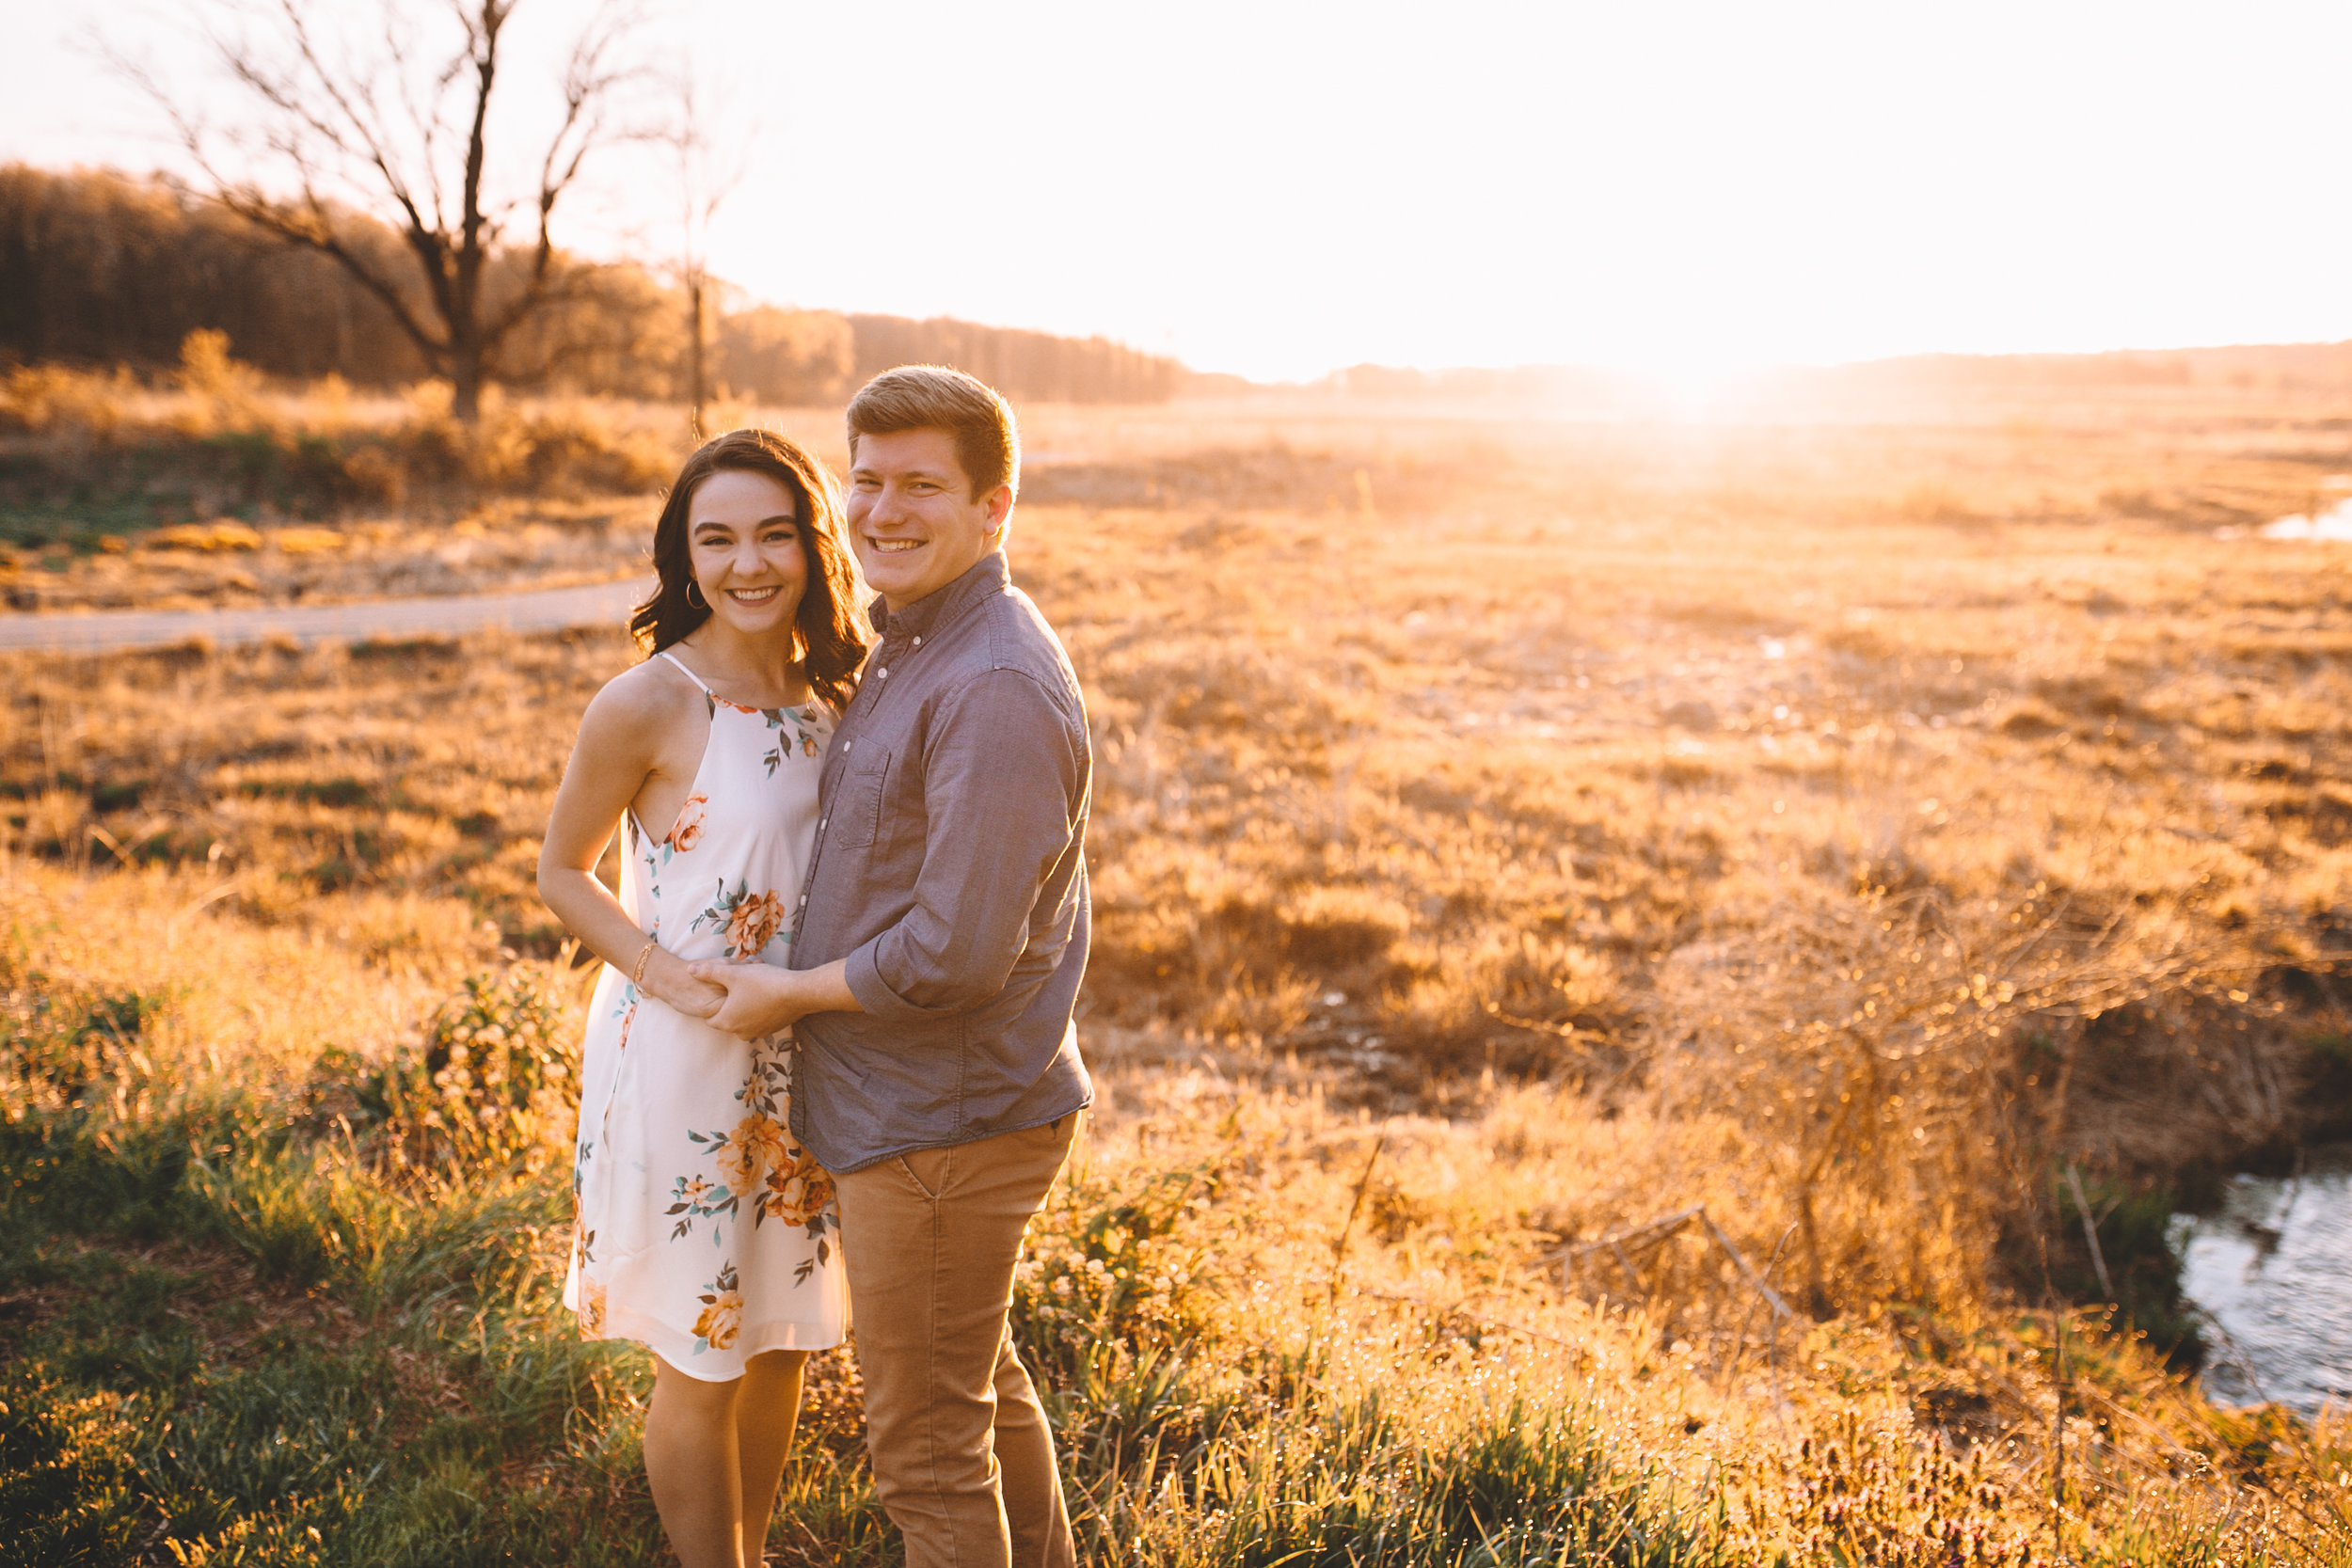 Will + Erin Engagement Photos at Prophetstown State Park  (38 of 183).jpg